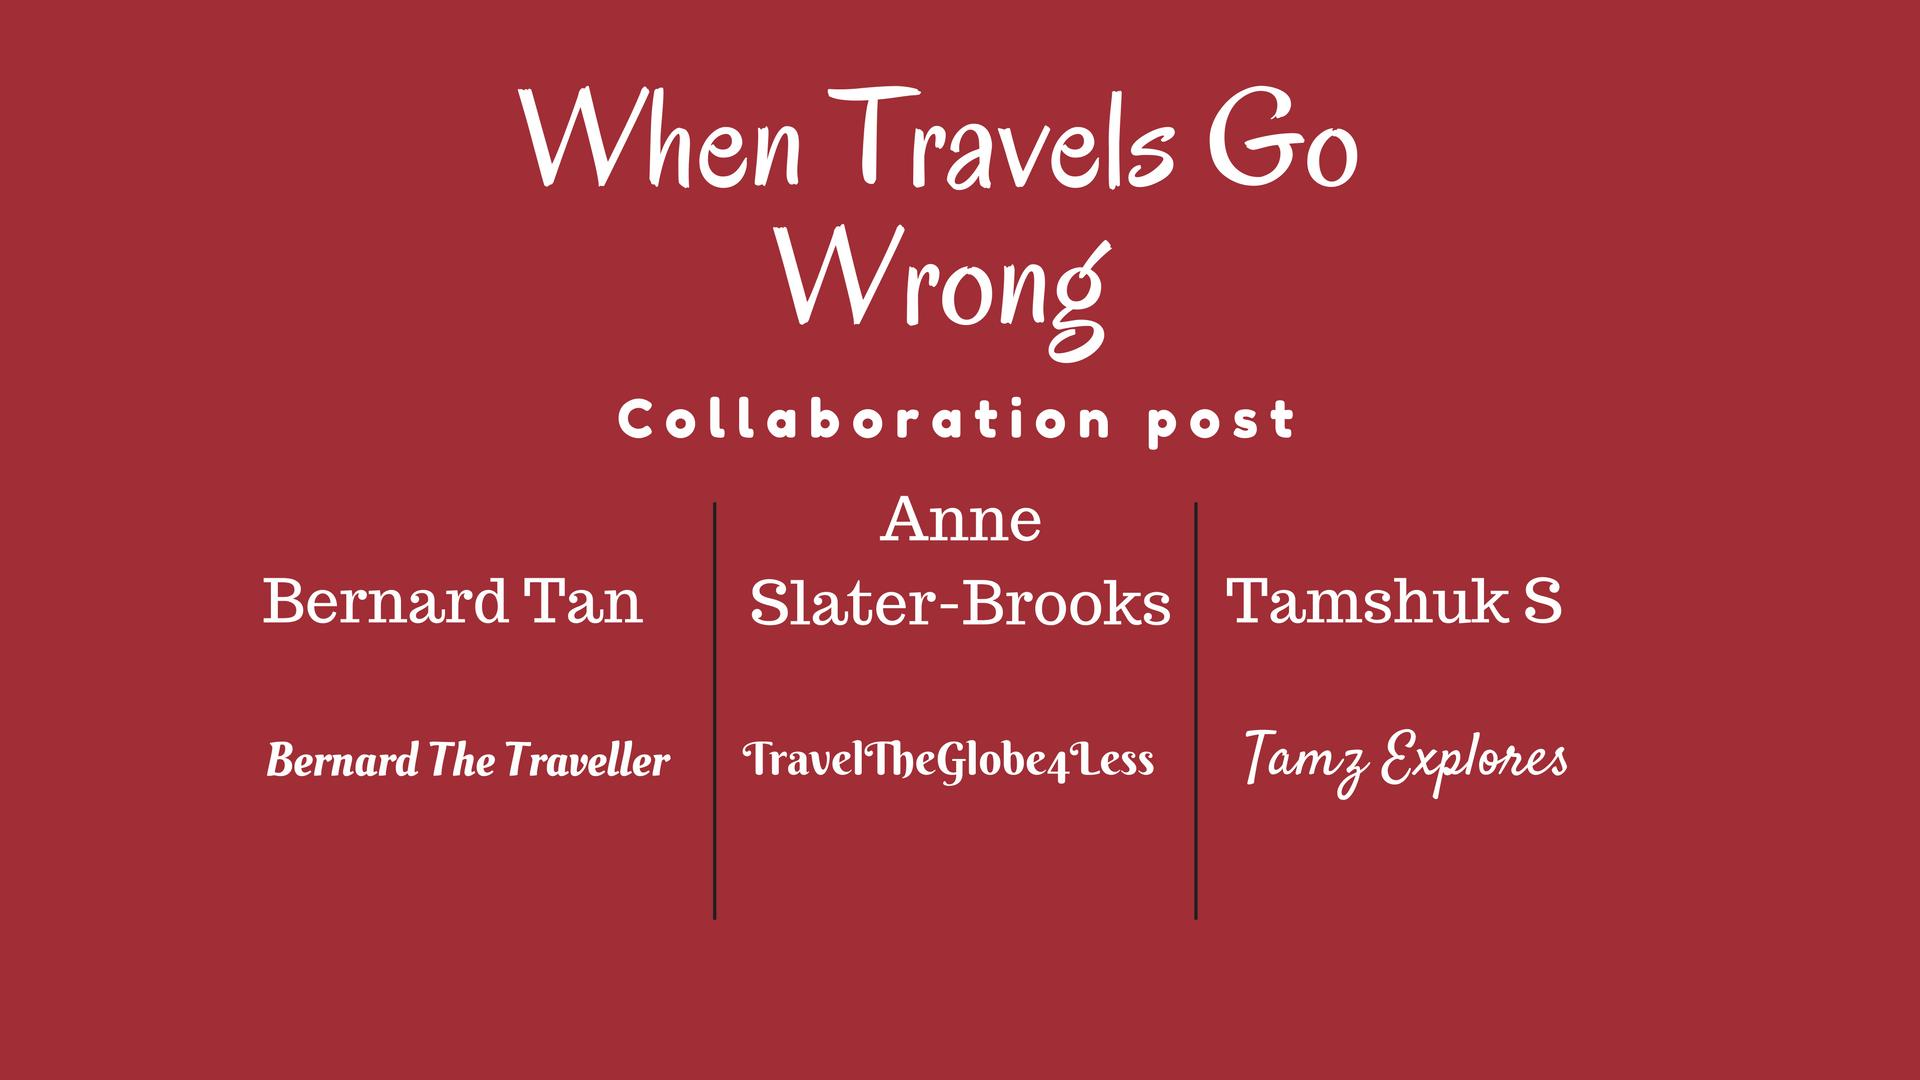 When Travels Go Wrong!! Three Travelers Share Their Worst Travel Moments